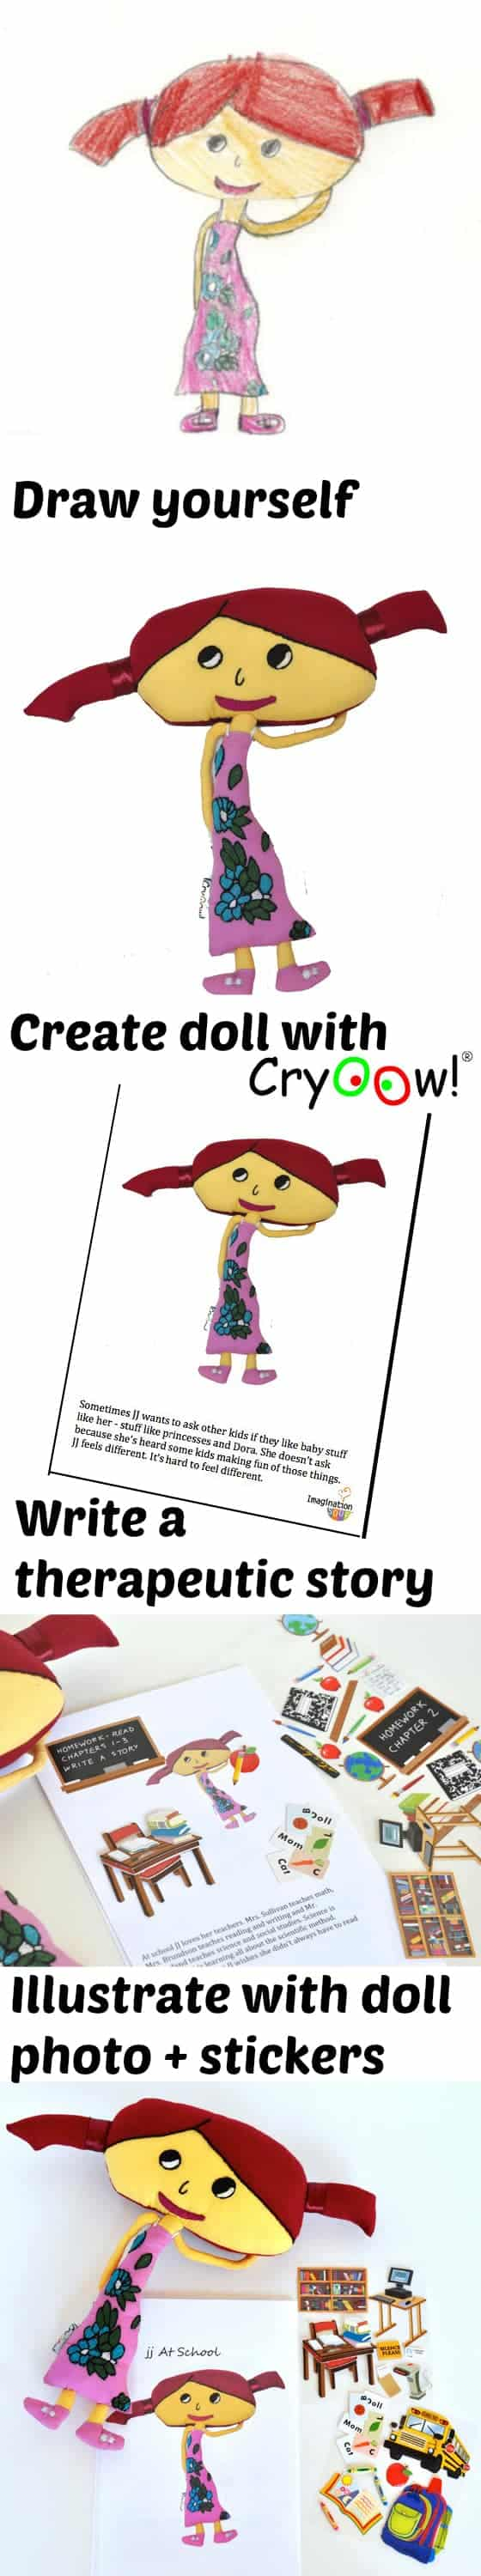 Cryoow! doll therapeutic stories for kids